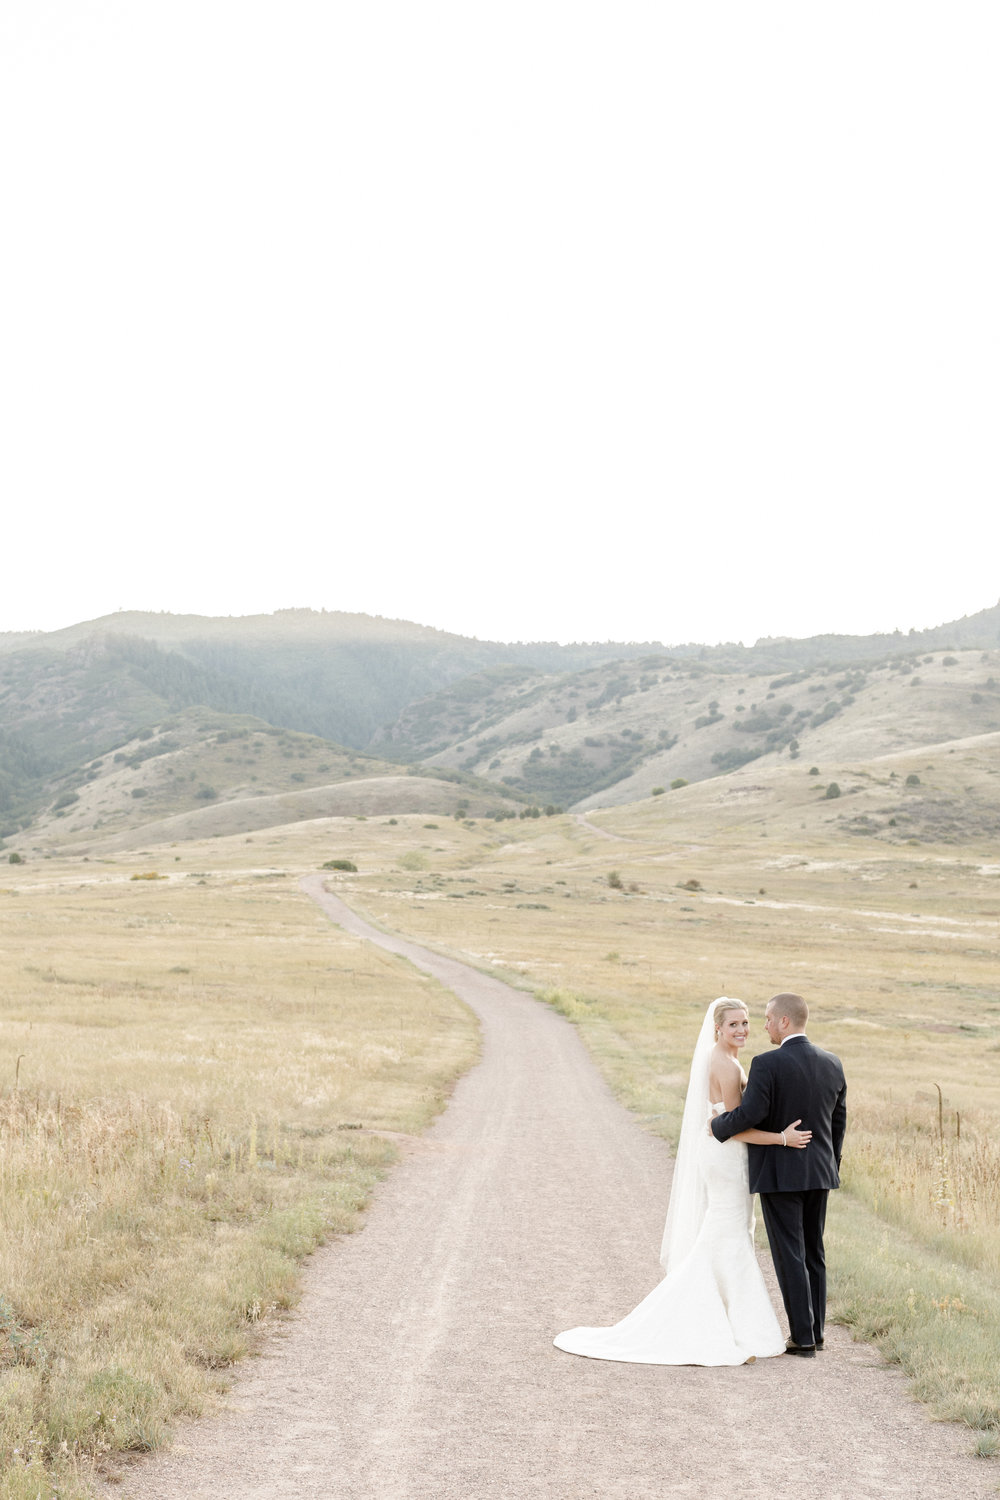 Hailley+Howard_Colorado+Wedding_The+Manor+House-477.jpg